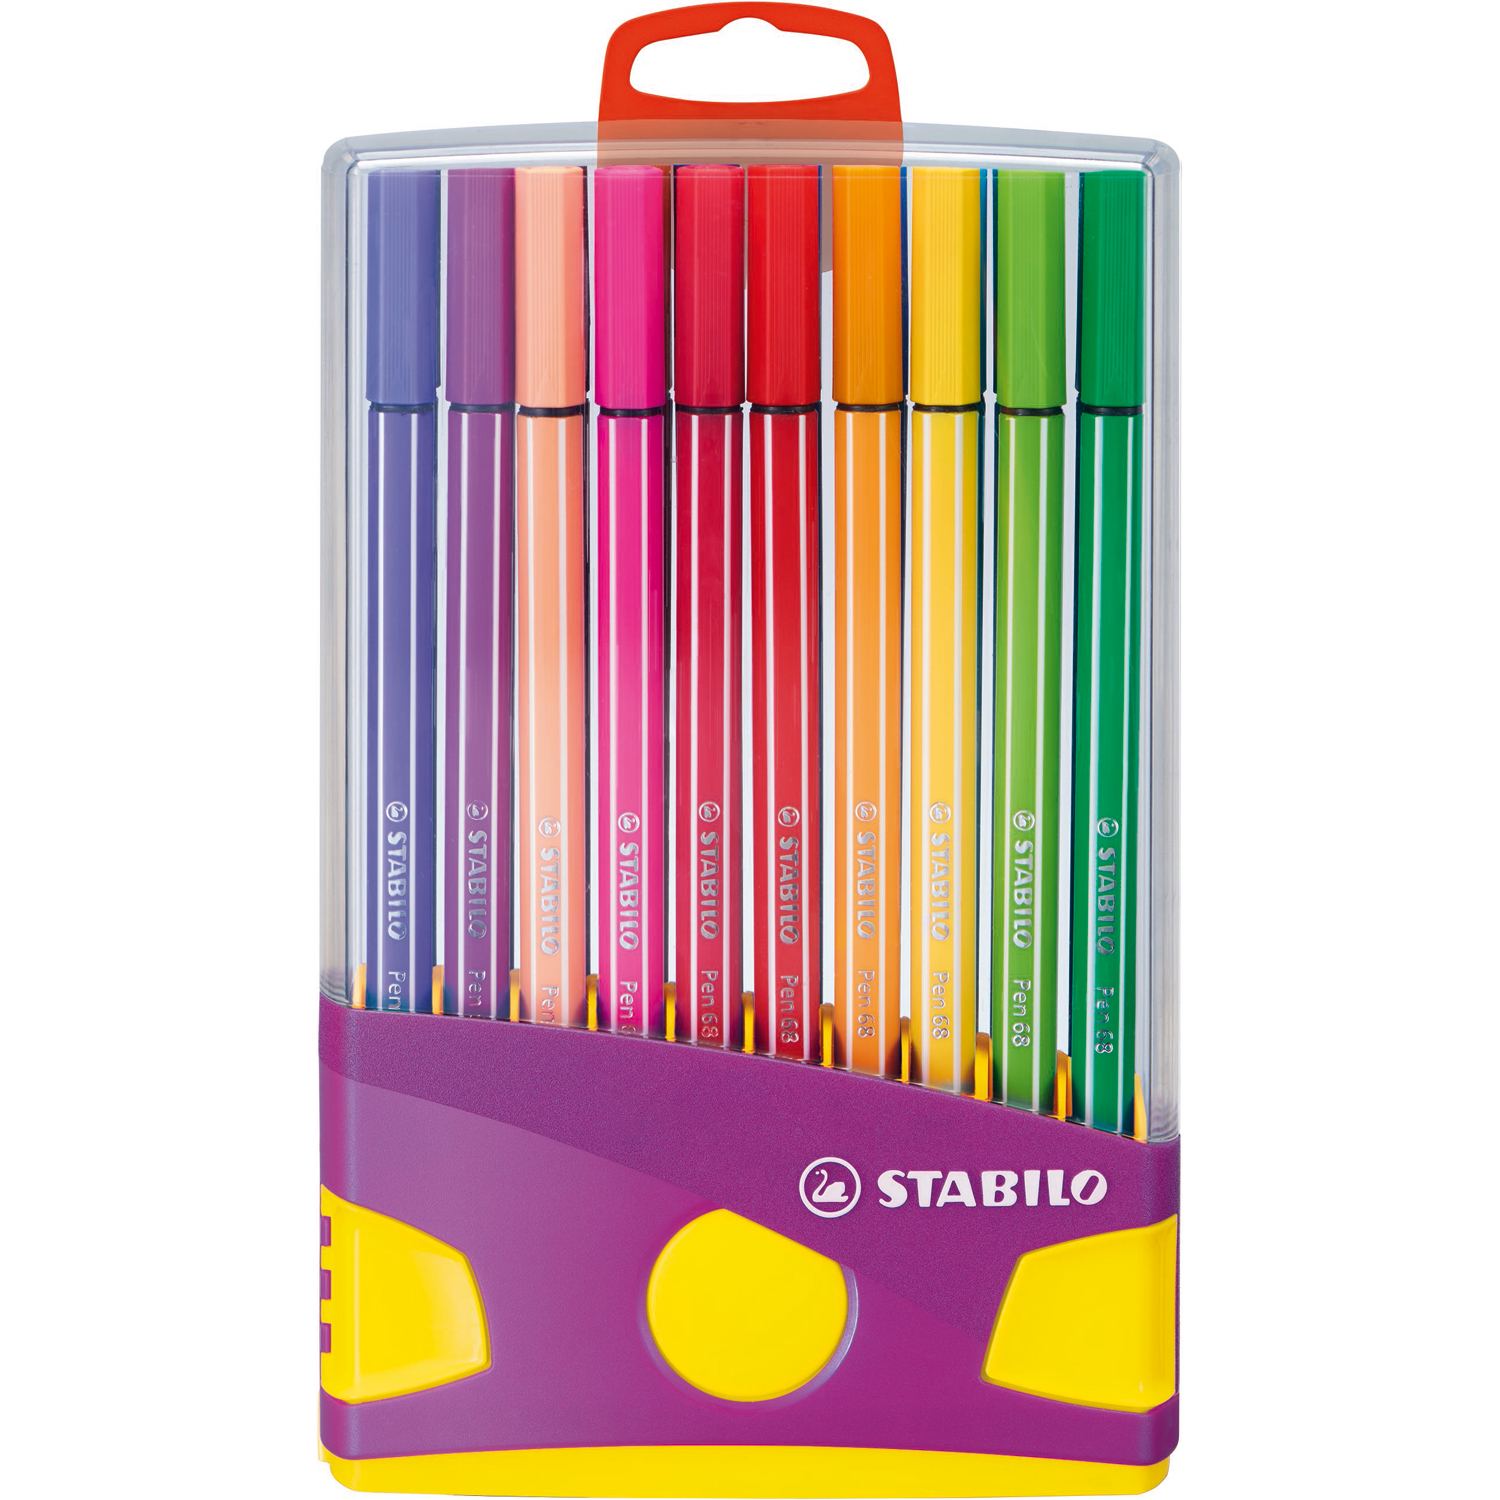 stabilo colorparade pen 68 lilas x 20 assortis stylo. Black Bedroom Furniture Sets. Home Design Ideas